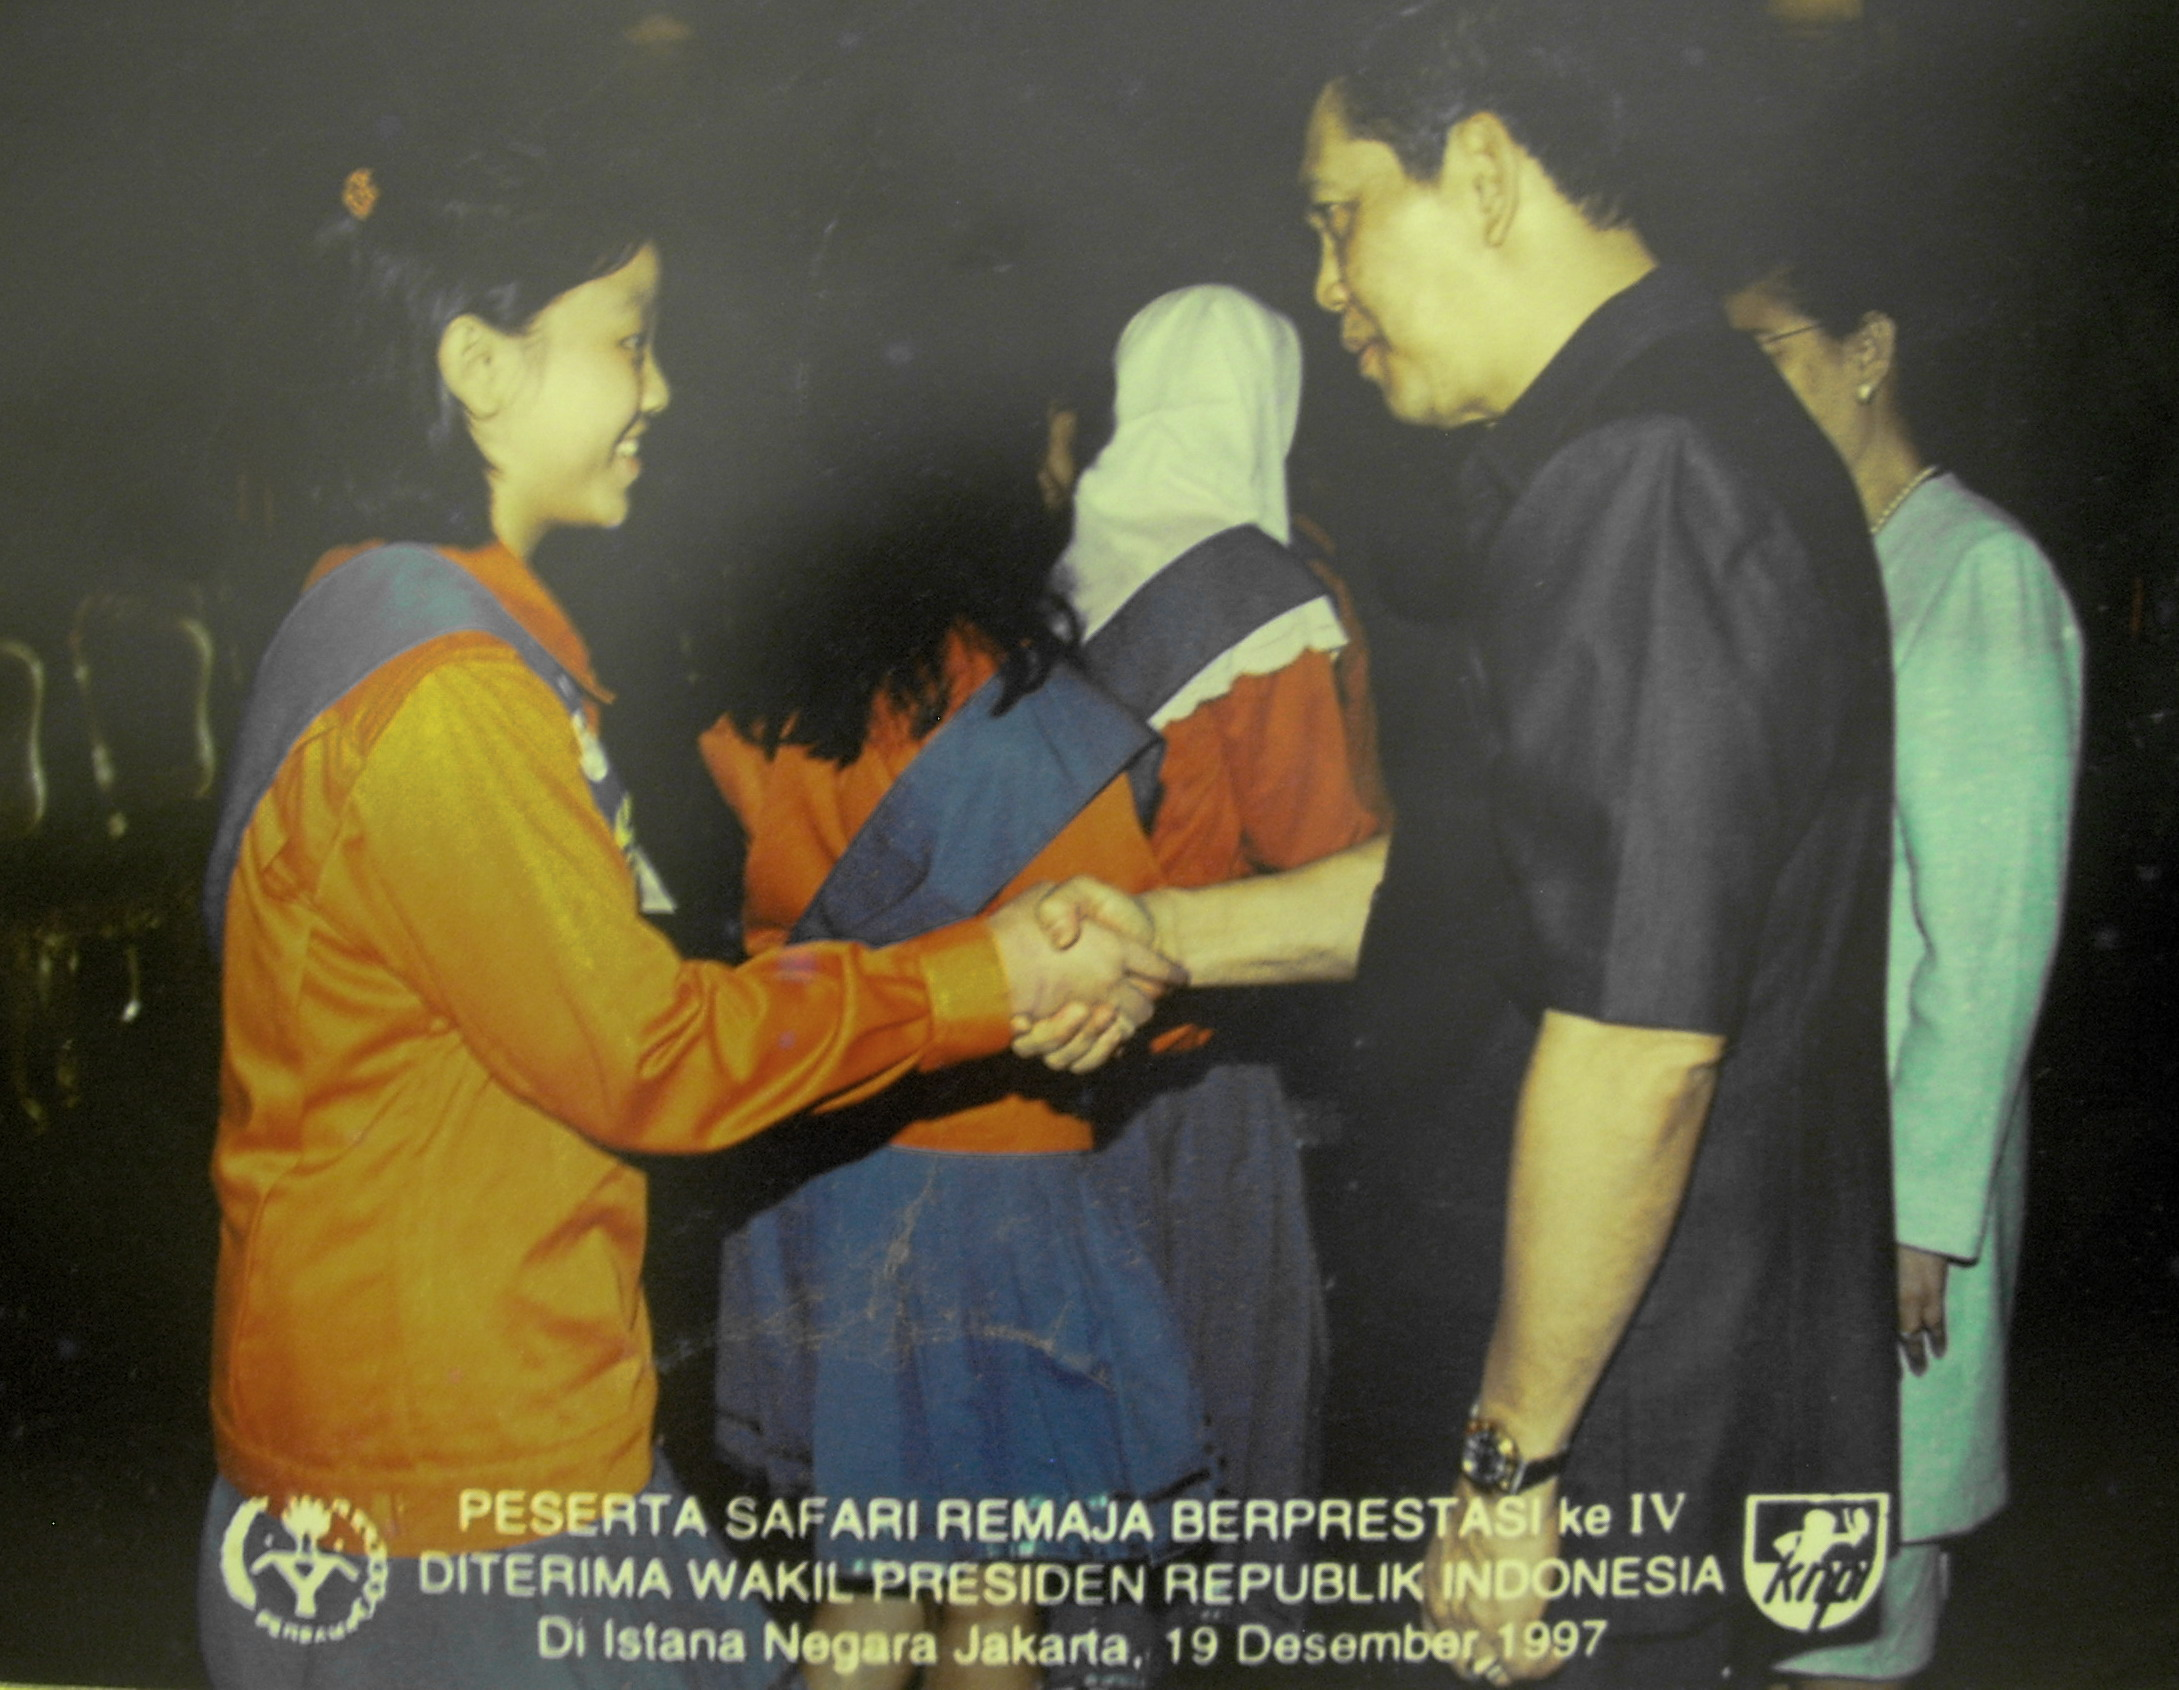 With Vice President Try Sutrisno